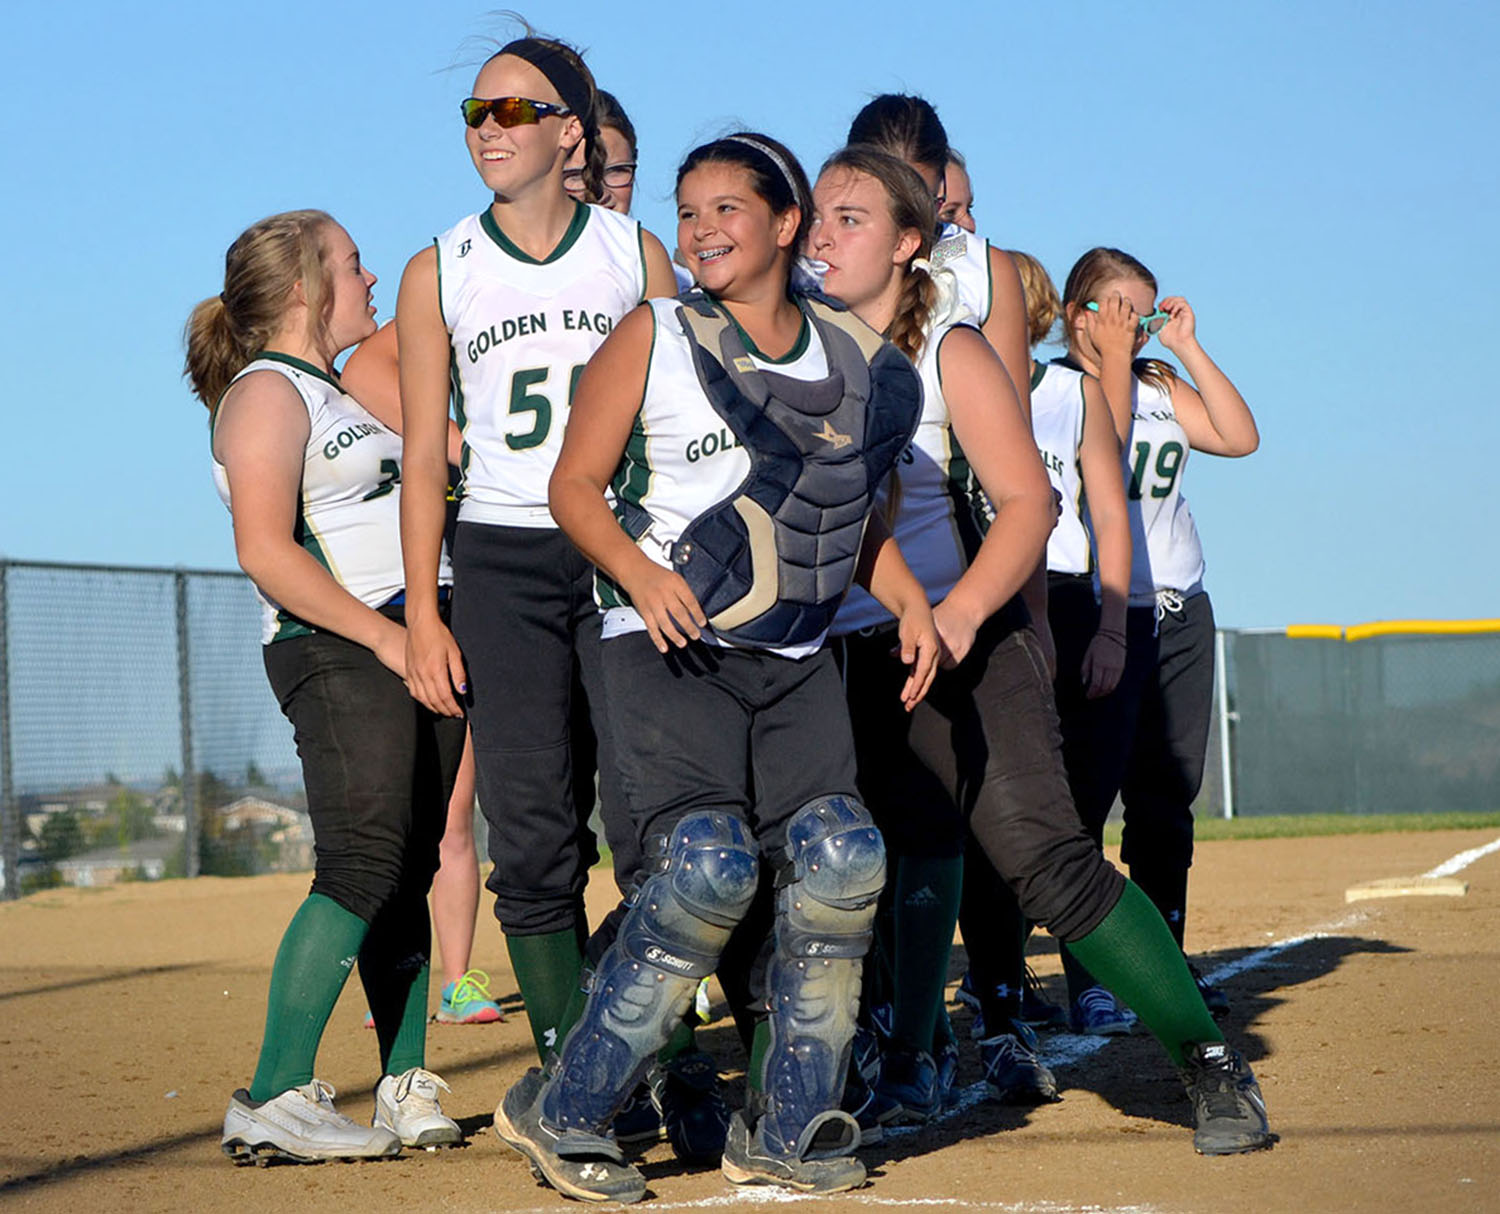 The level-three softball team excitedly gathers together before saying farewell to Douglas County after their win.